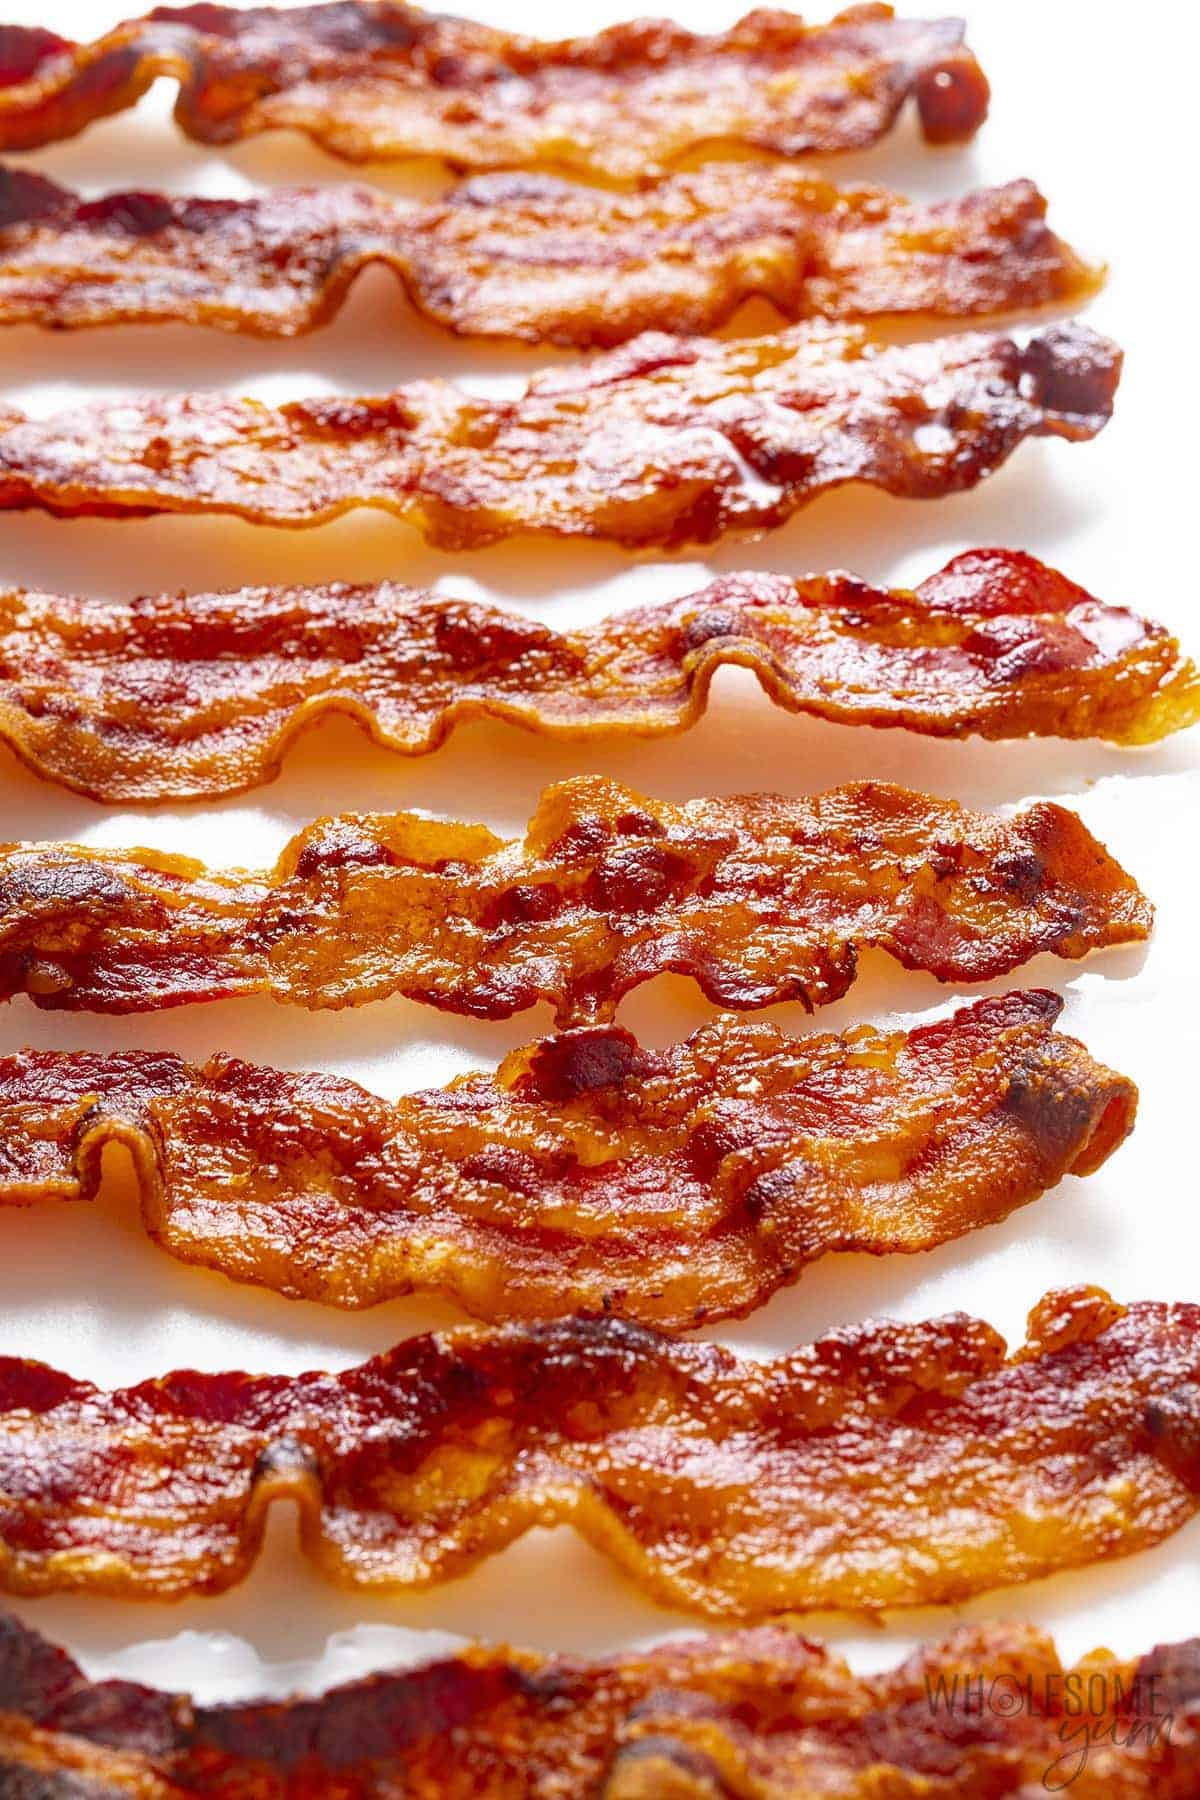 Air fryer bacon on a white surface